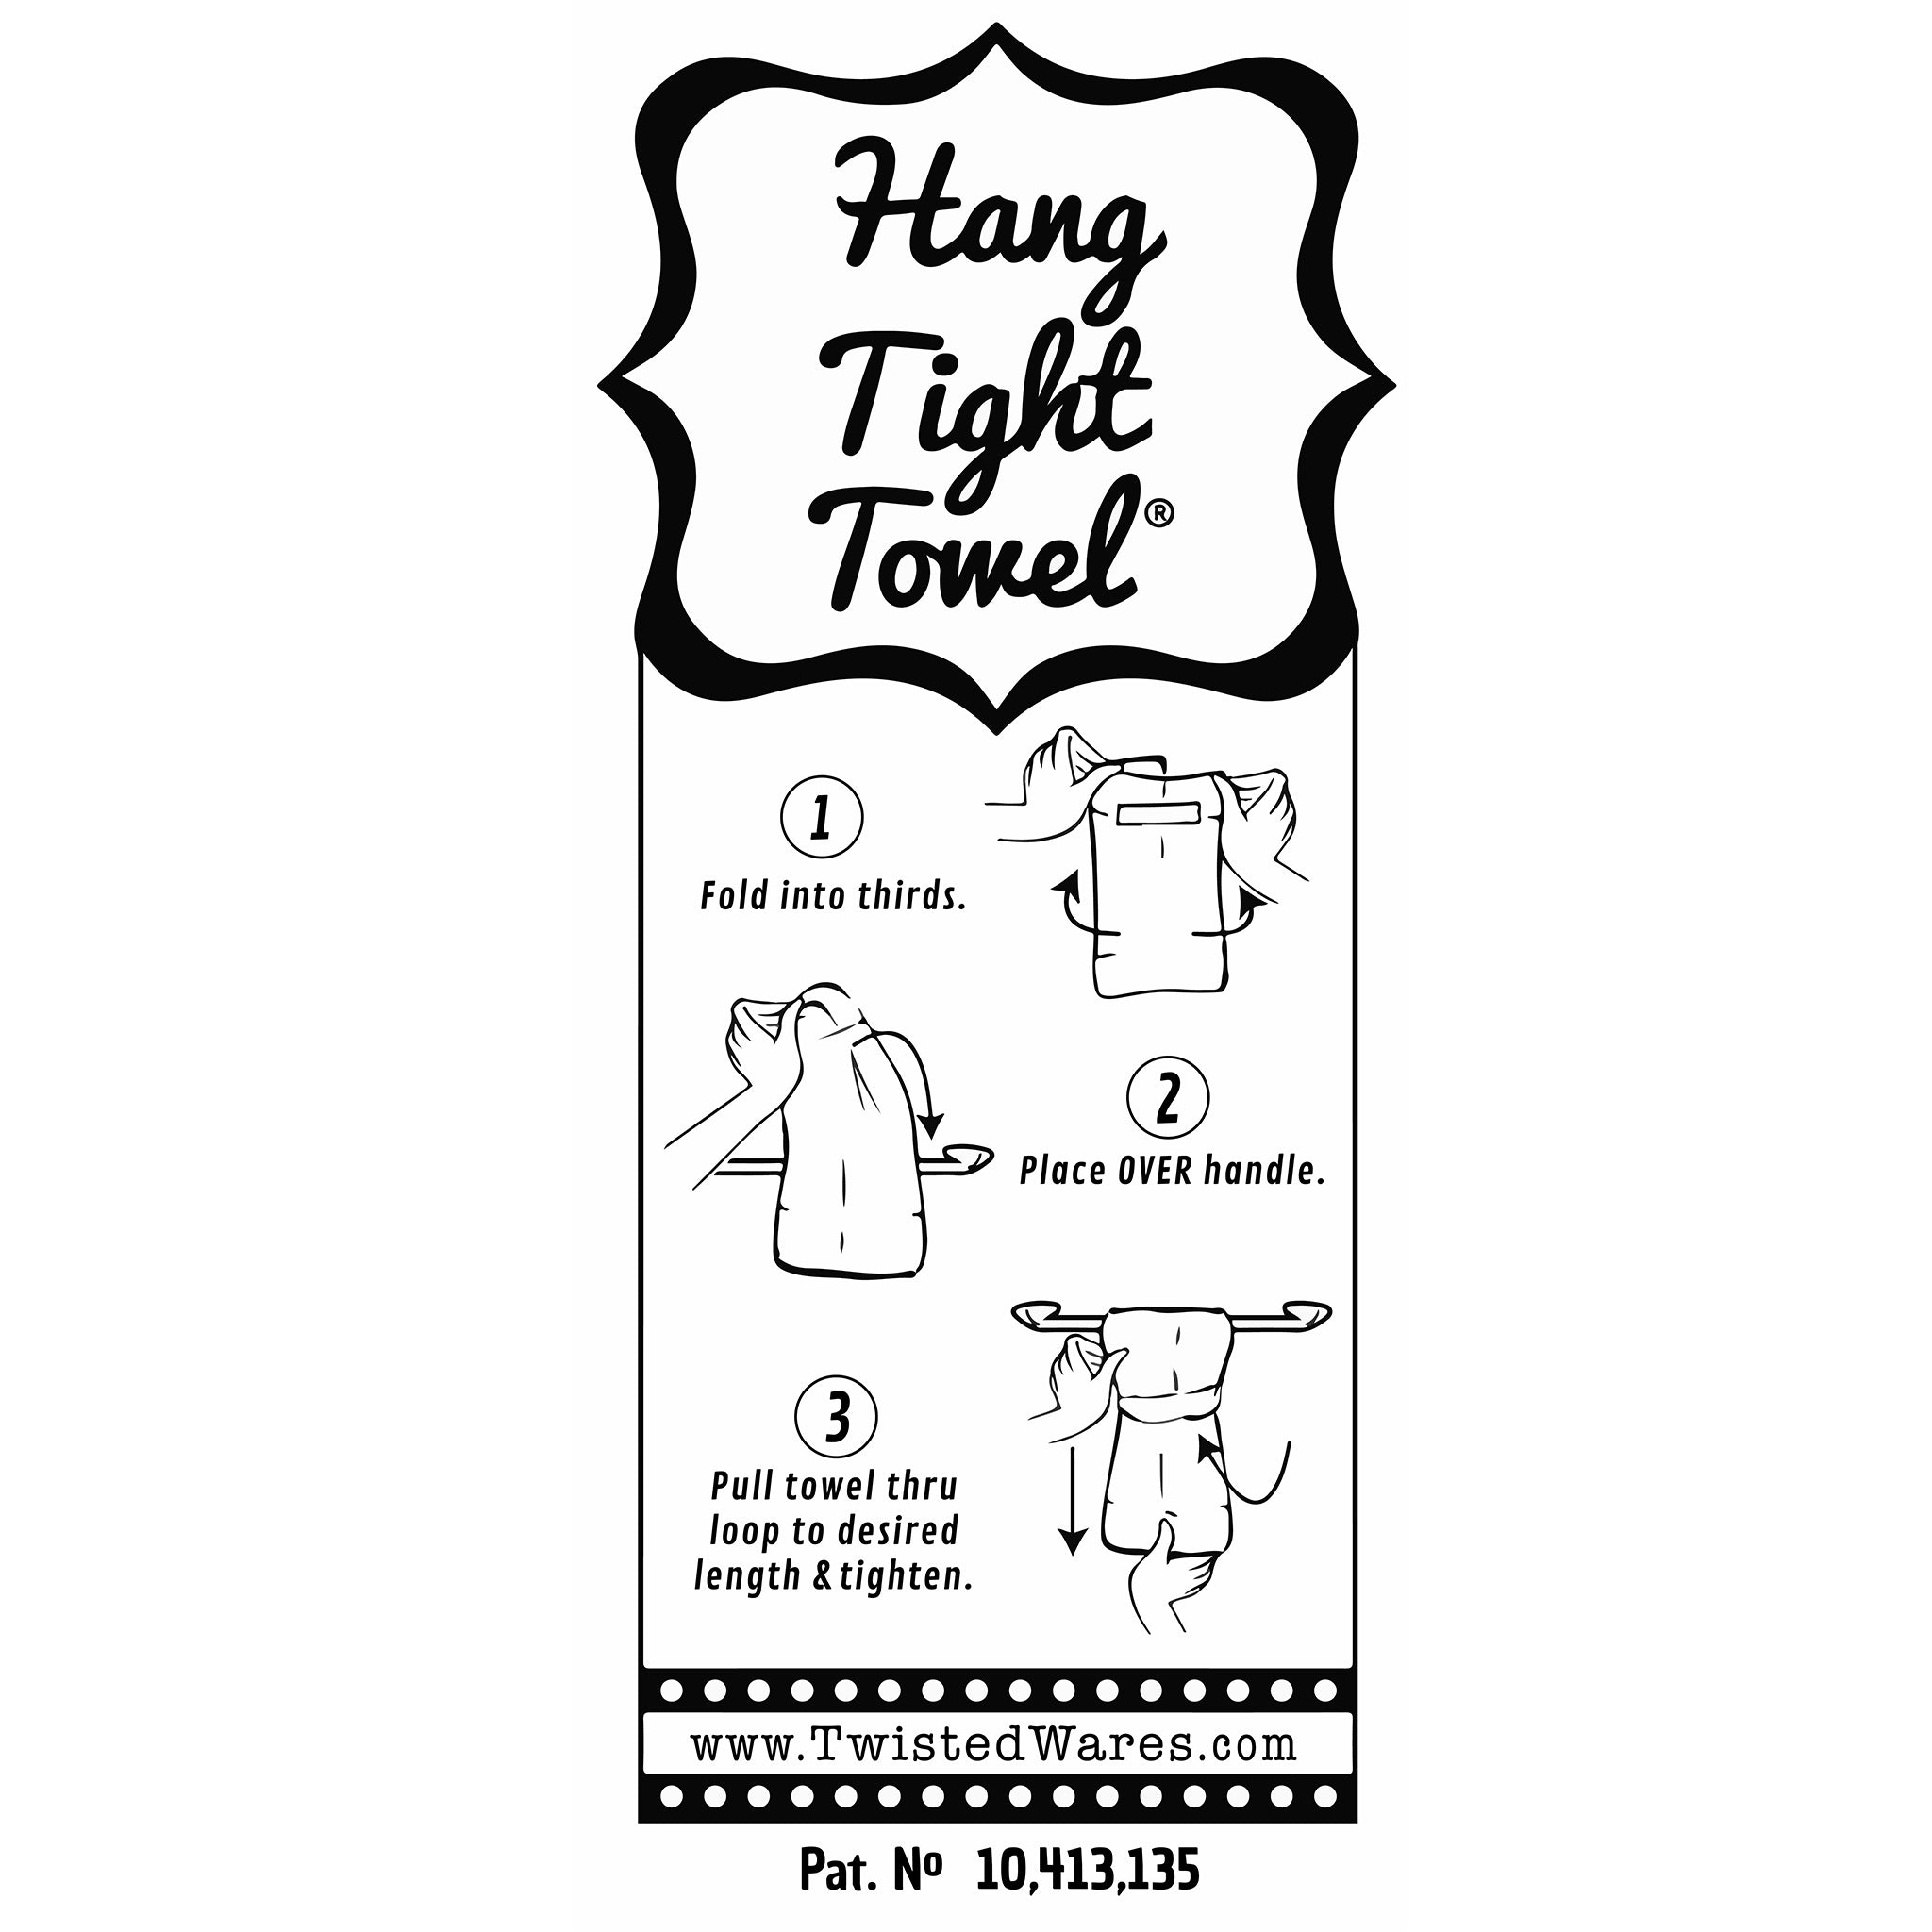 I Rub My Own Meat Flour Sack Hang Tight Towel®